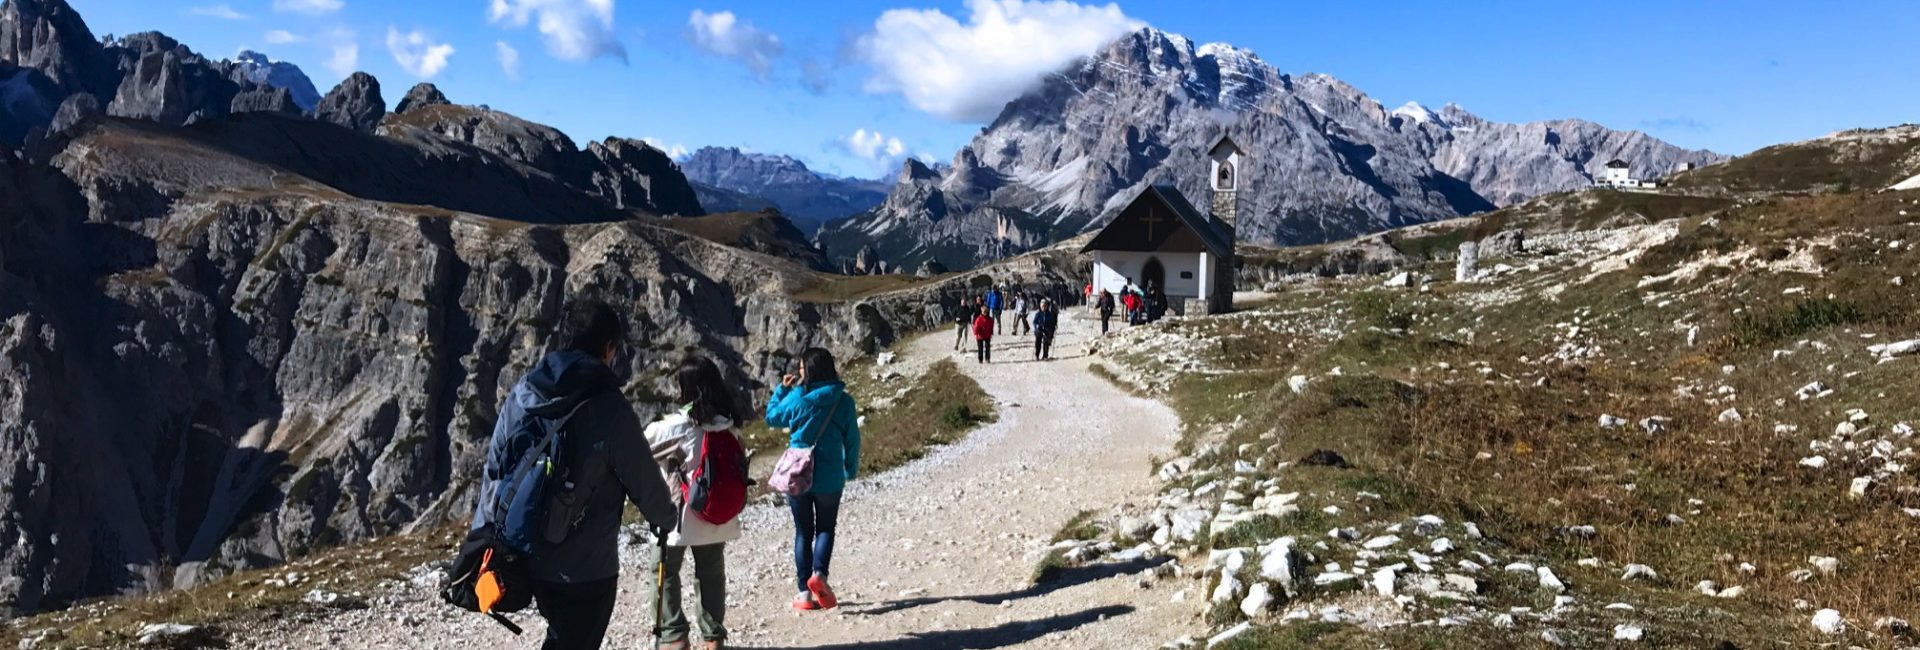 Tre Cime in Italy's Dolomites is a Must-Do Walk